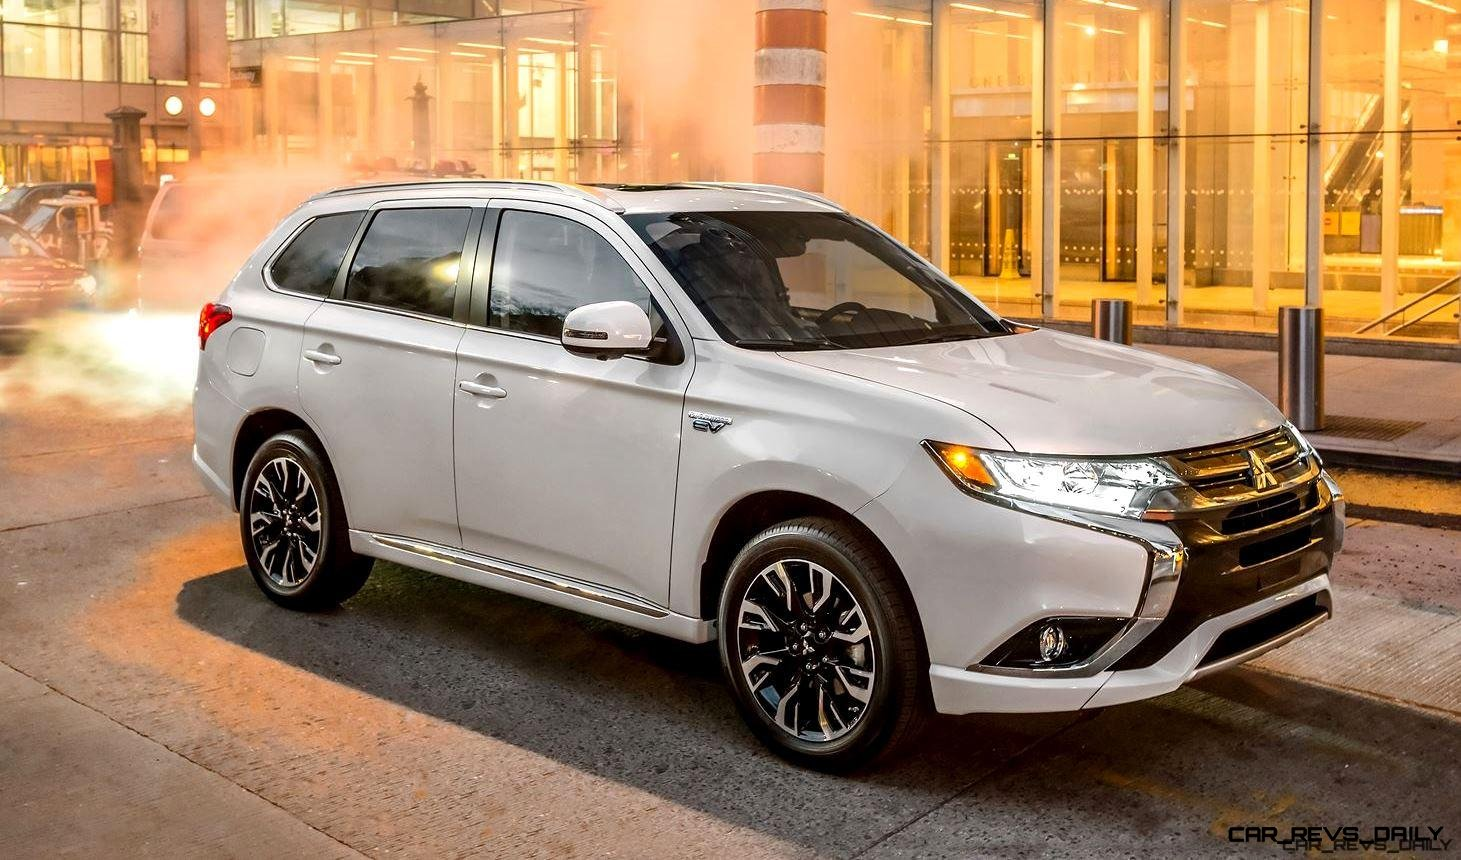 ny debuts 2017 mitsubishi outlander phev hybrid li ion eawd 7 seater. Black Bedroom Furniture Sets. Home Design Ideas